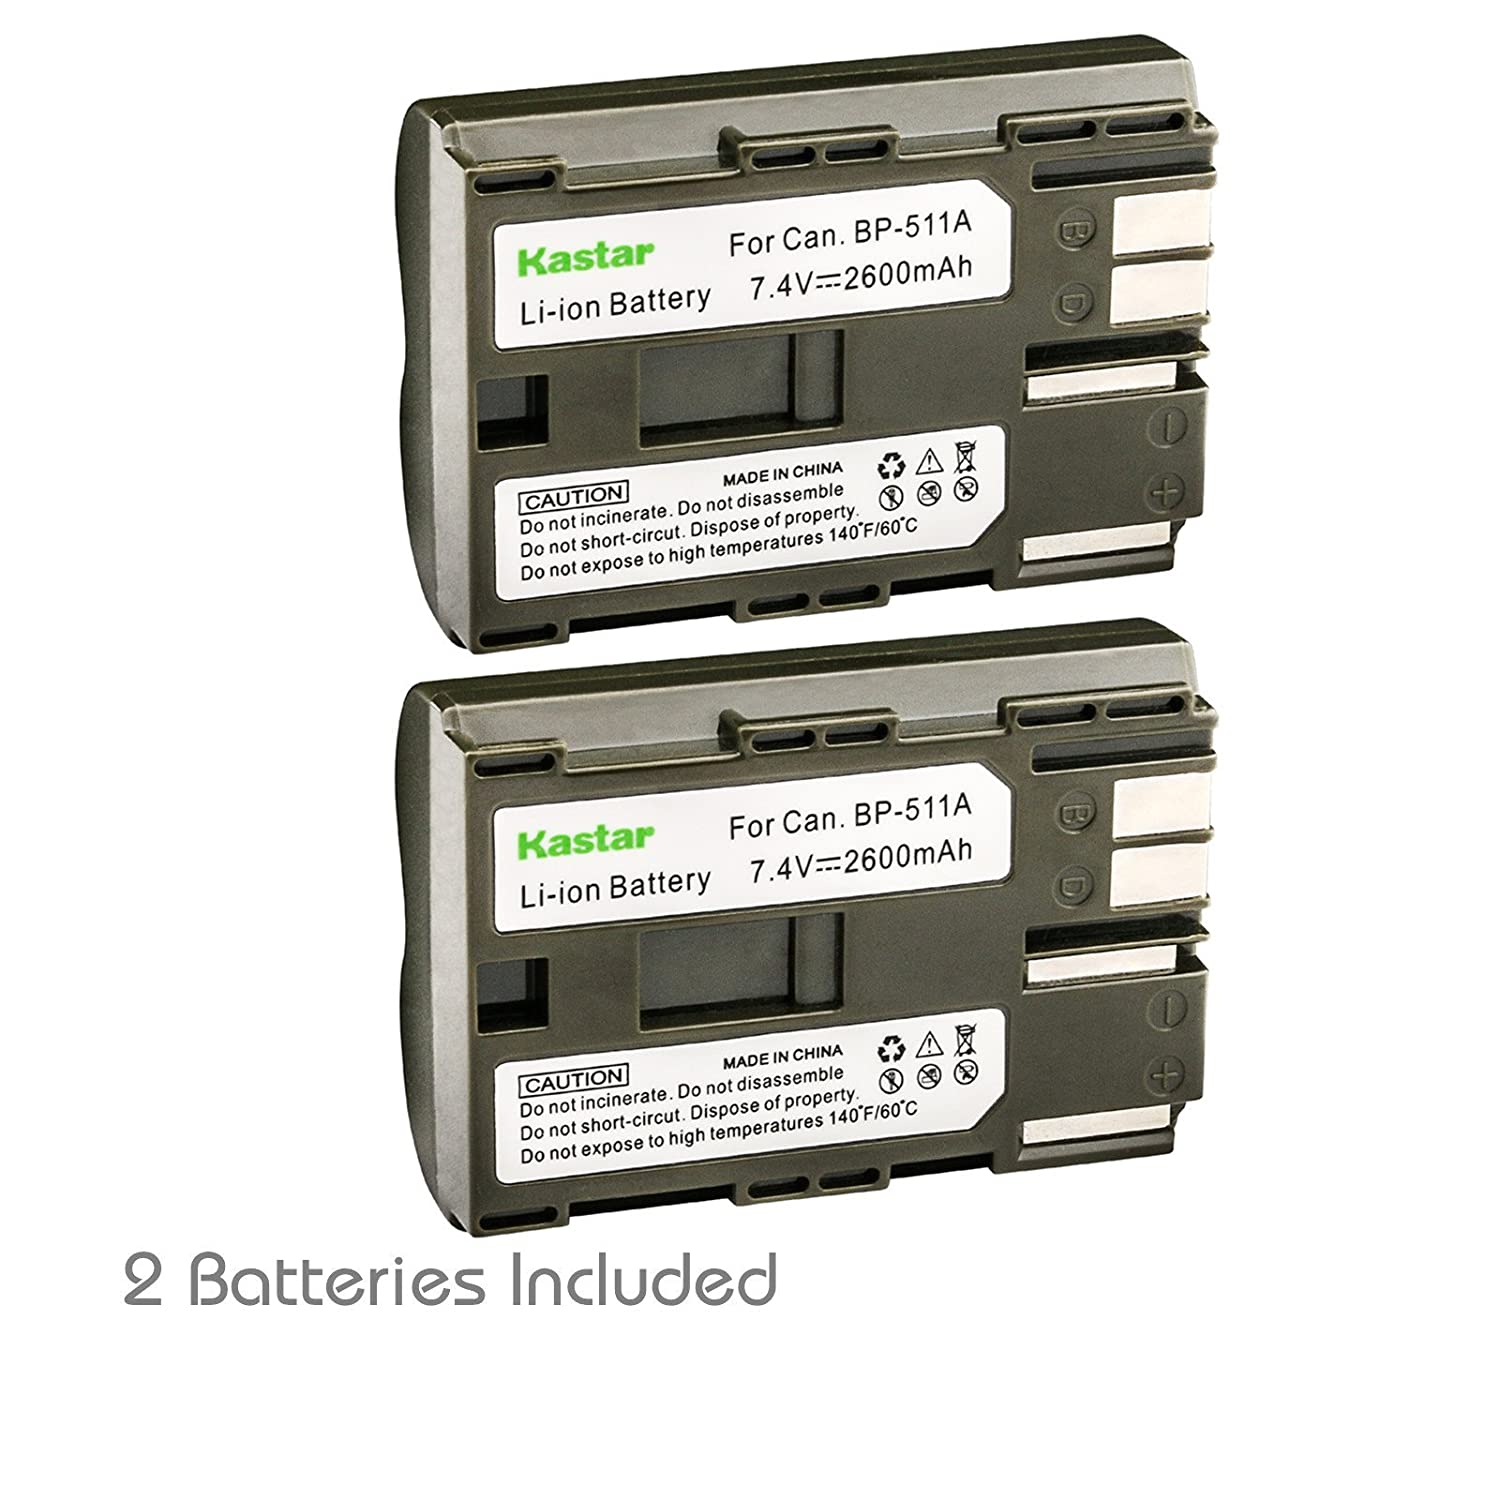 Kastar Battery (2-Pack) for Canon BP-511, BP-511A work with Canon EOS 5D, 10D, 20D, 20Da, 30D, 40D, 50D, 300D, D30, D60, Rebel, PowerShot G1, G2, G3, G3X, G5, G6, Pro 1, Pro 90, Pro 90 IS, FV10, FV100, FV2, FV20, FV200, FV30, FV300, FV40, FV400, FV50, FVM1